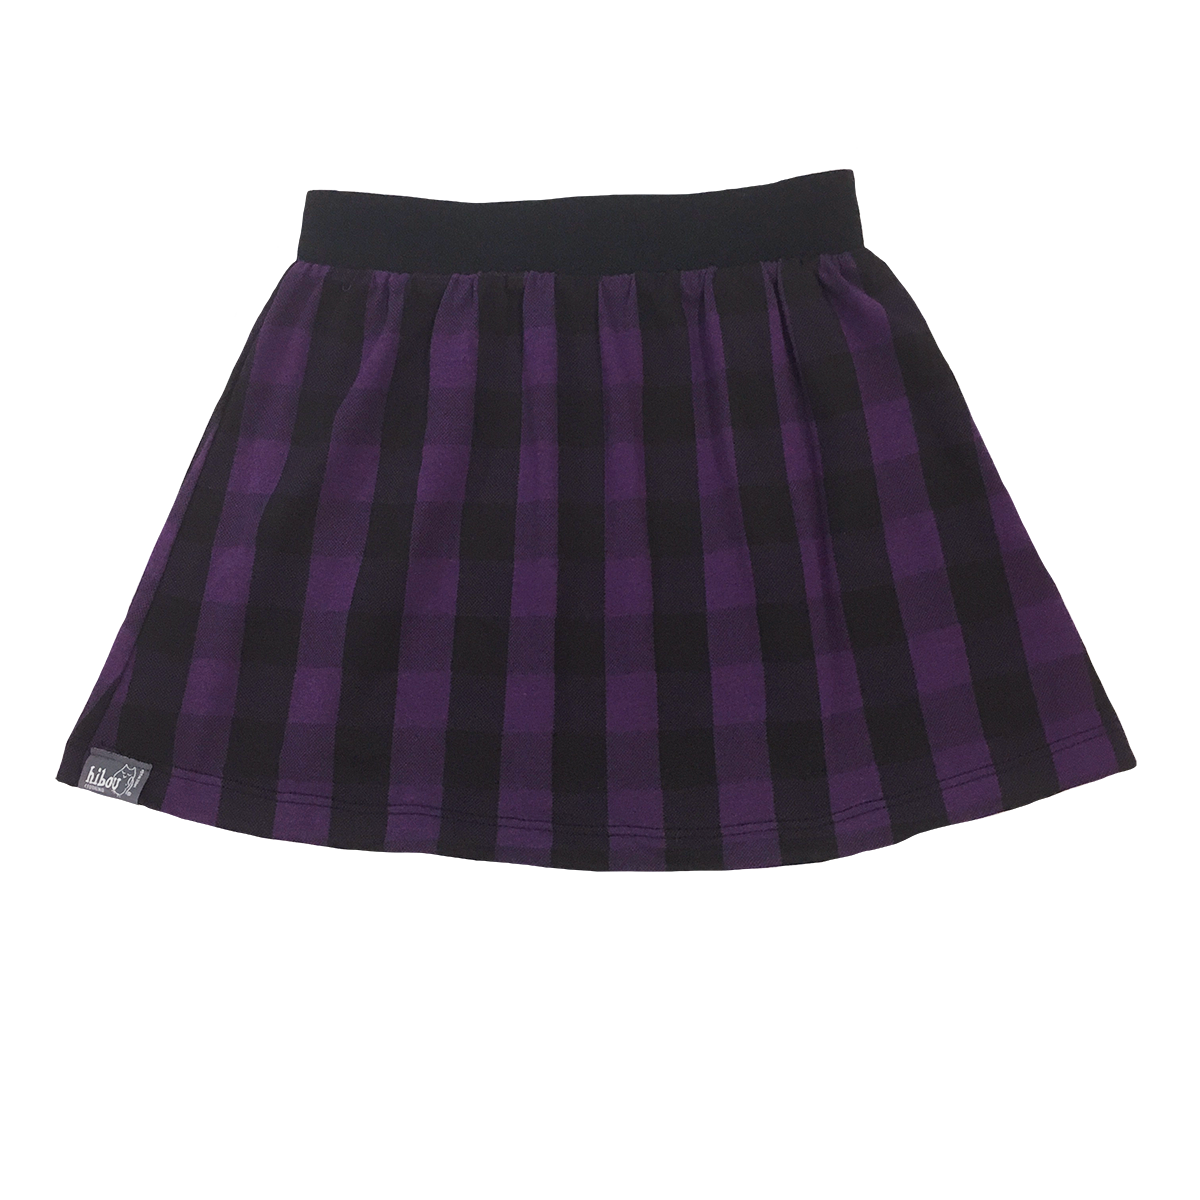 Skirt clipart purple object. Buy black plaid at